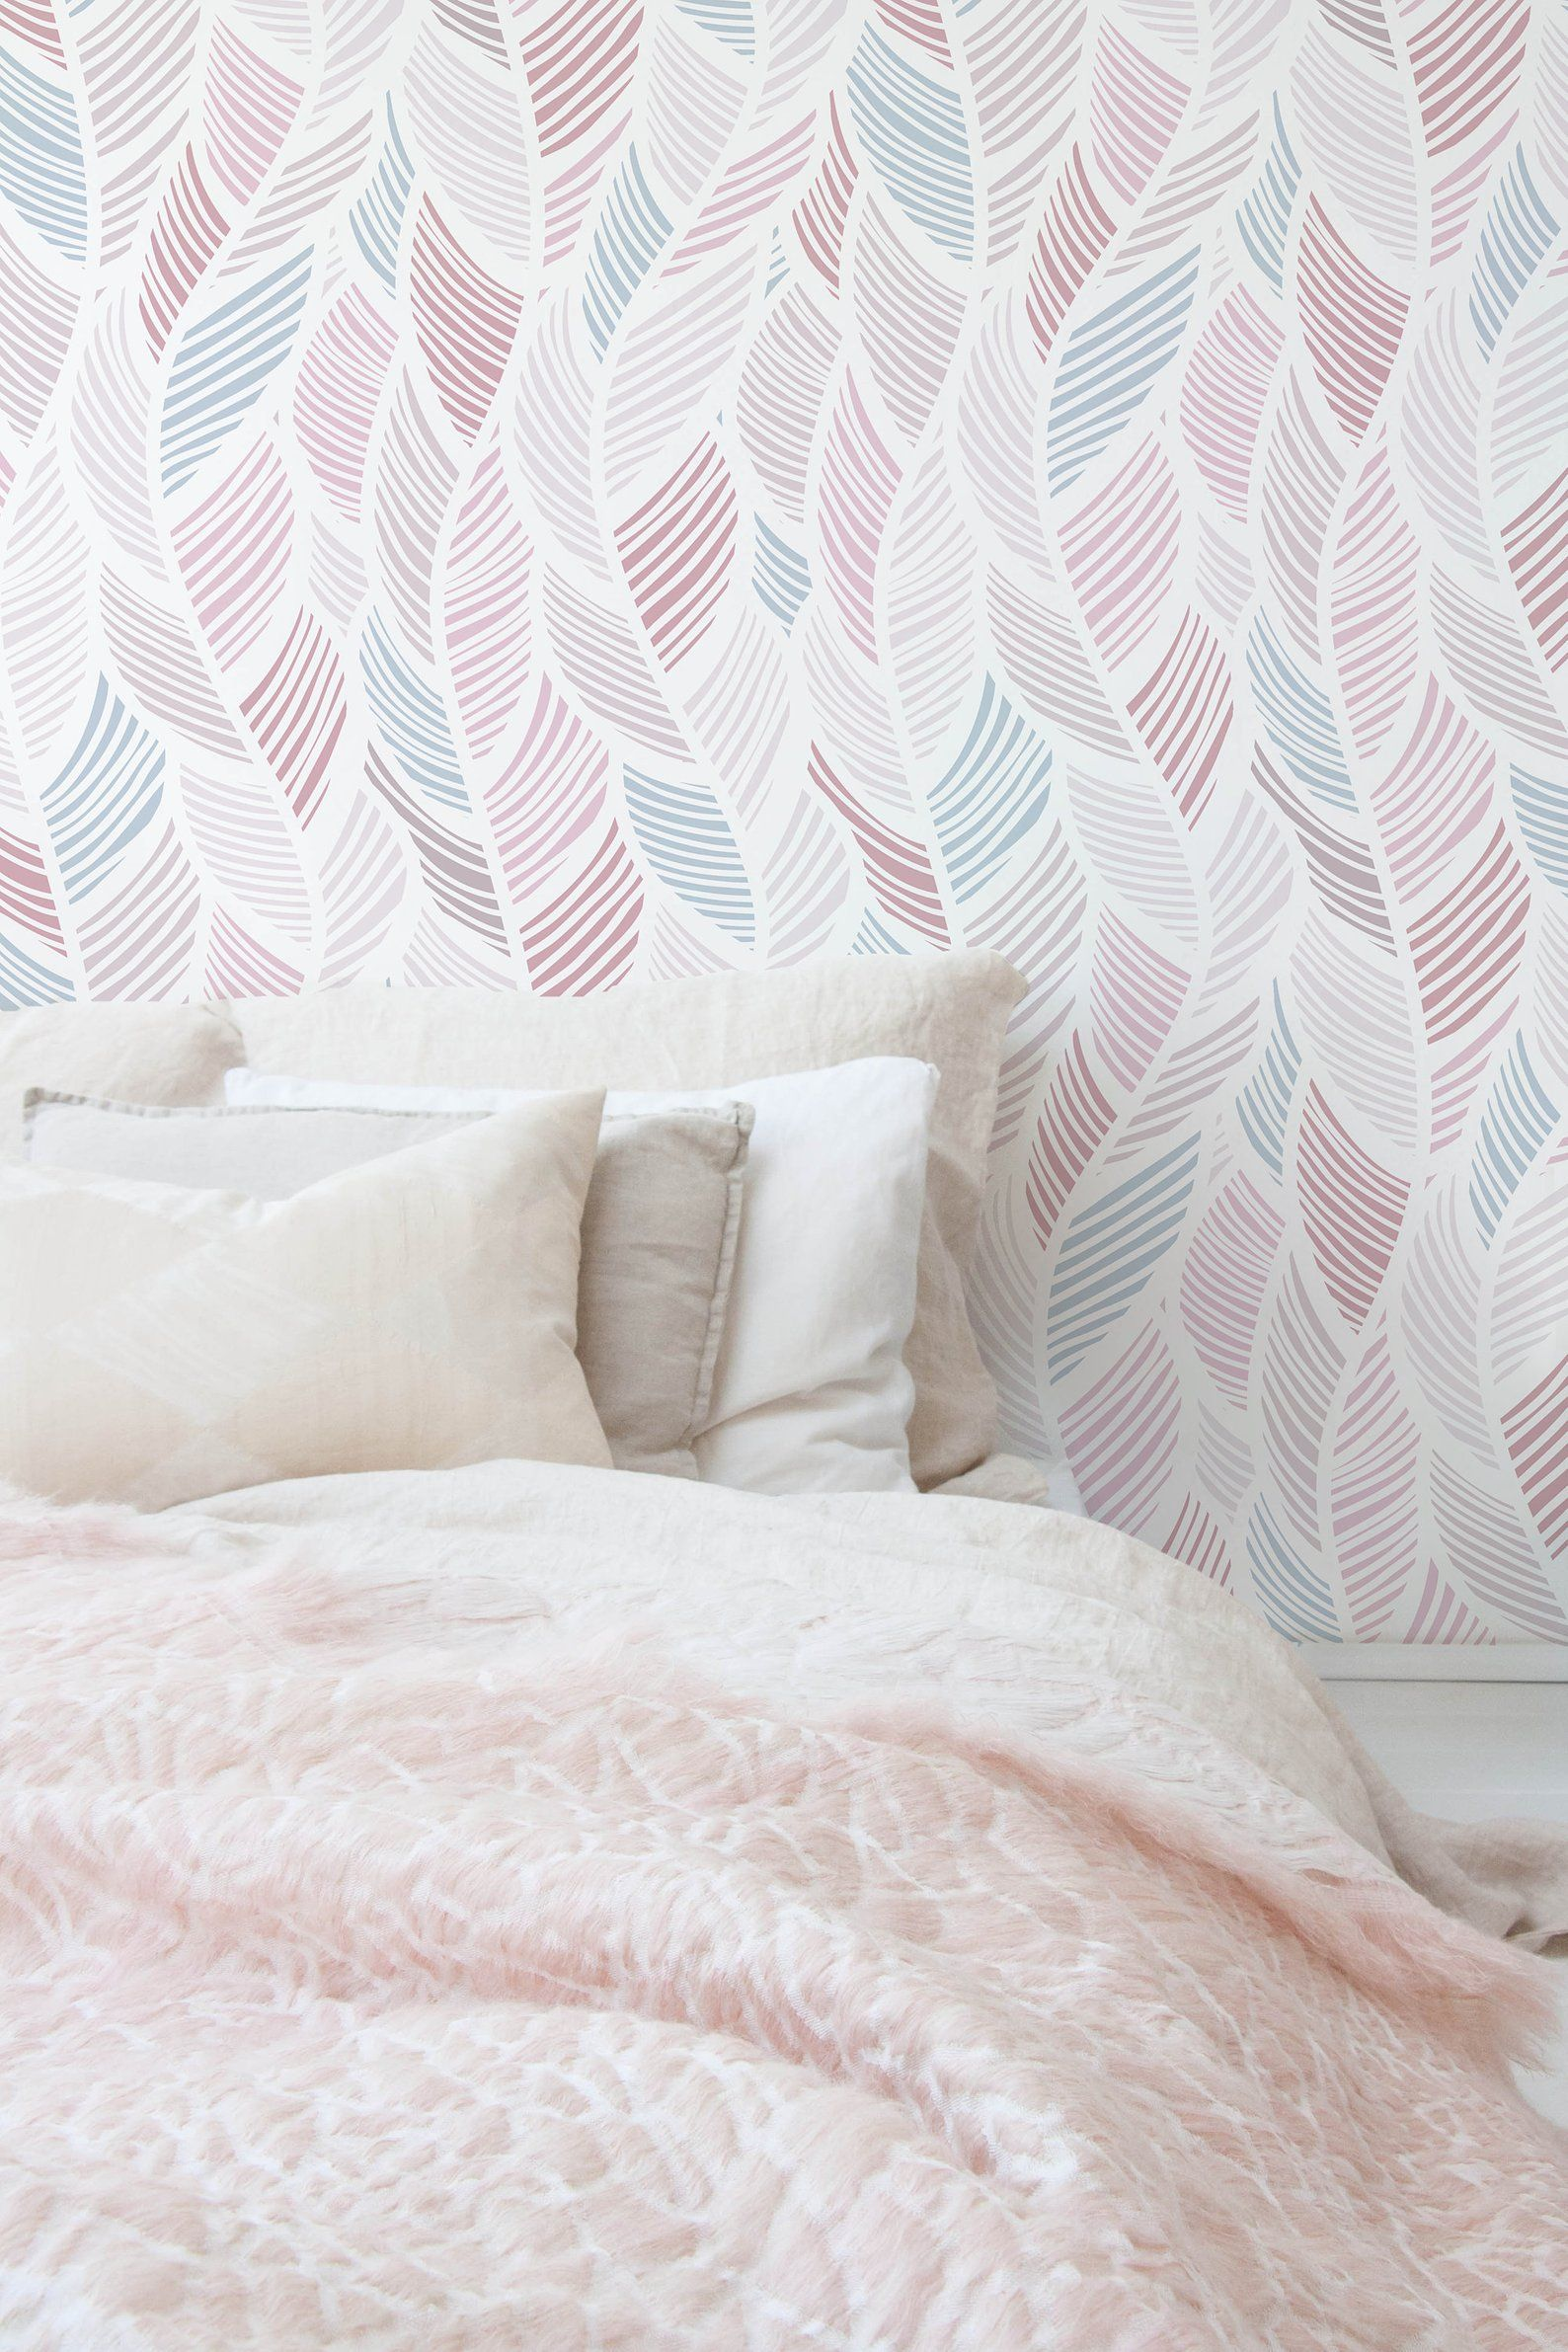 Boho Wallpaper, Boho Wall Mural, Boho Style, Peel and